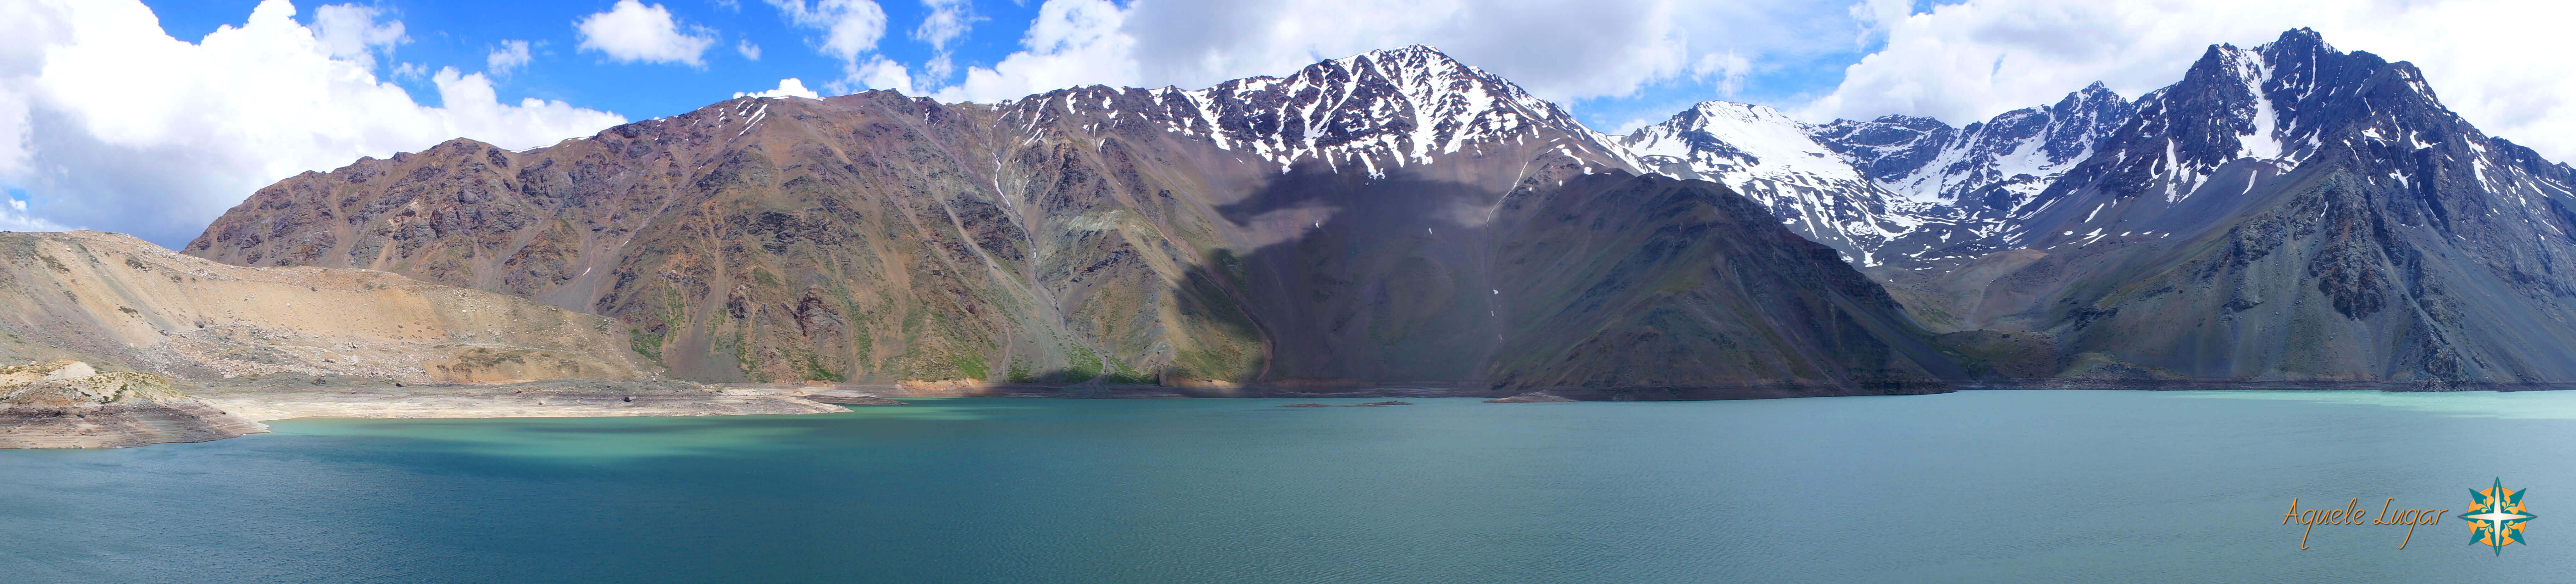 chile-yeso